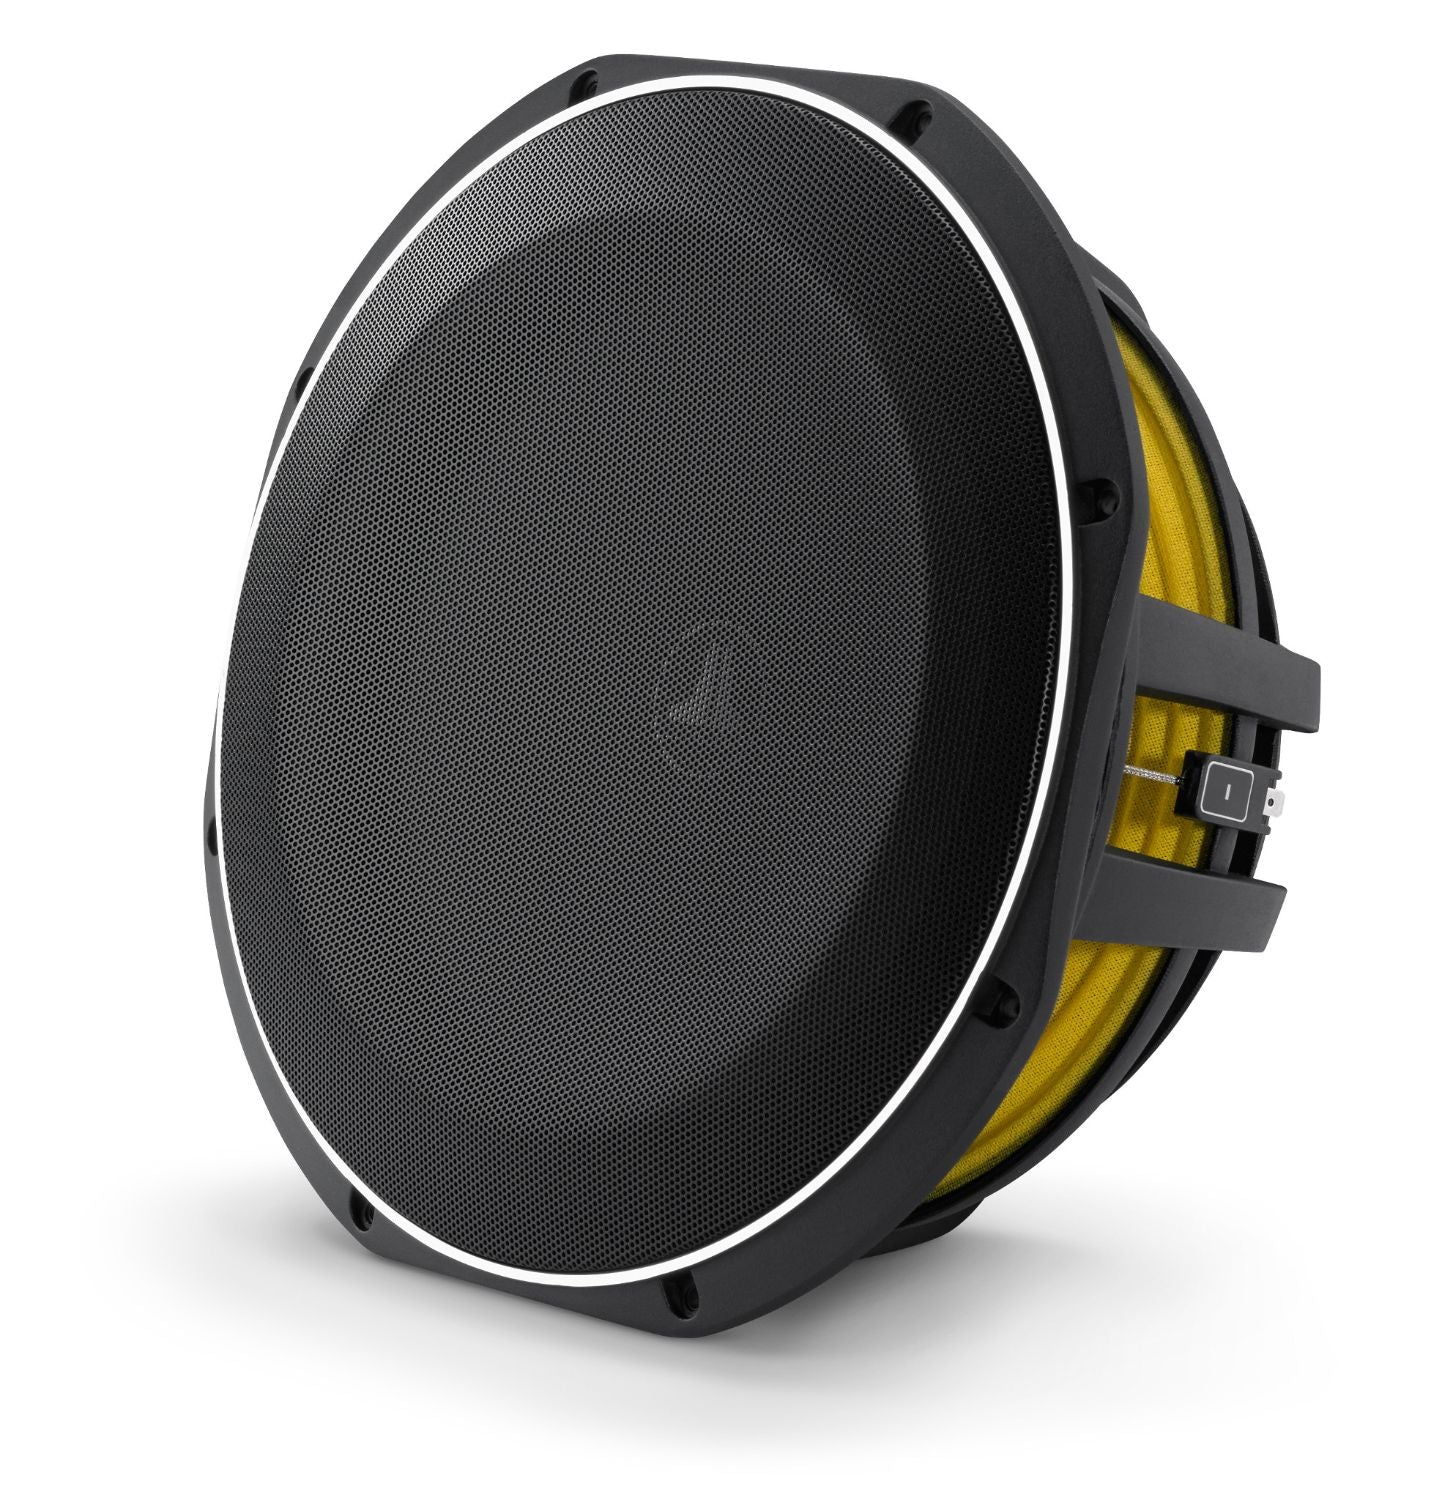 Front of 12TW1 Subwoofer Facing Left with Grille